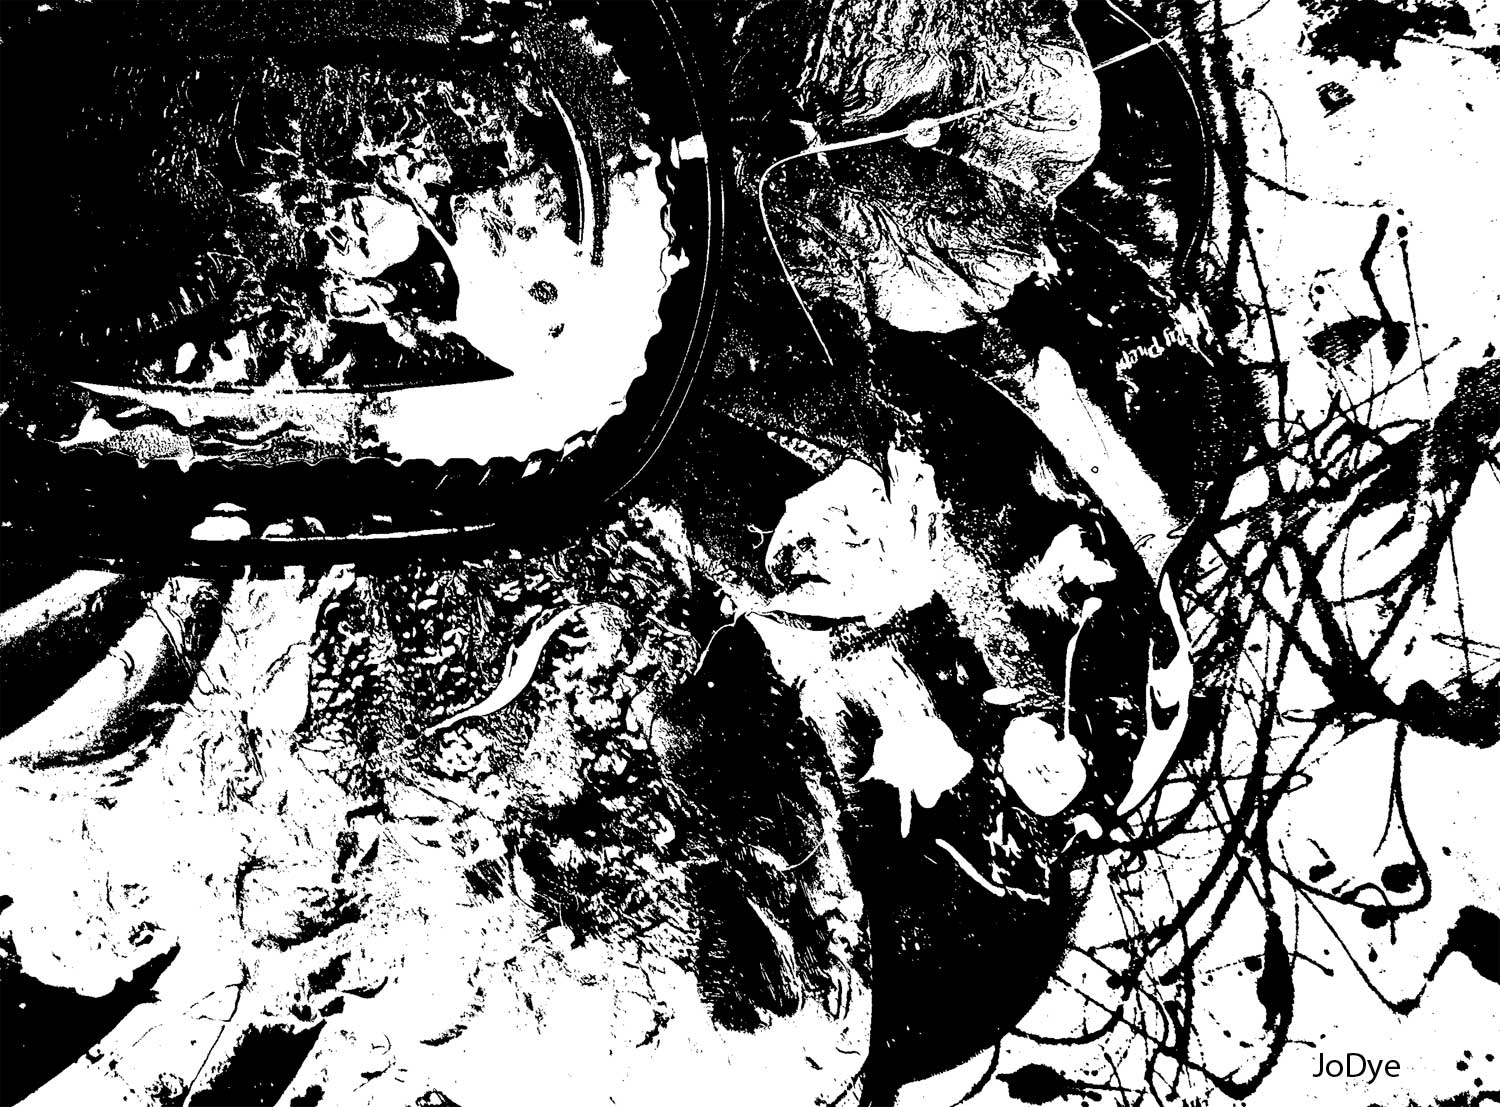 Black And White Abstract Art 6 Desktop Background